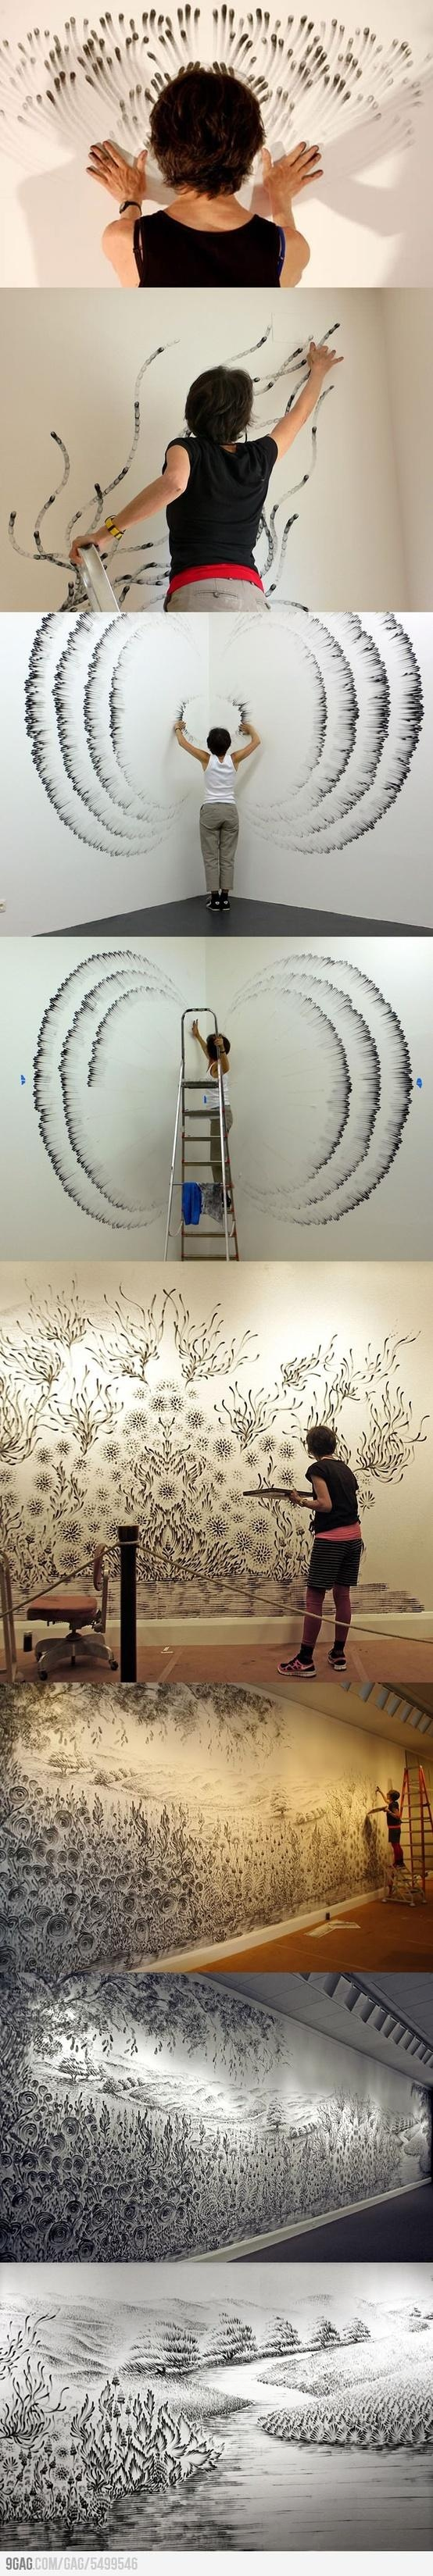 Finger drawings by Judith Braun